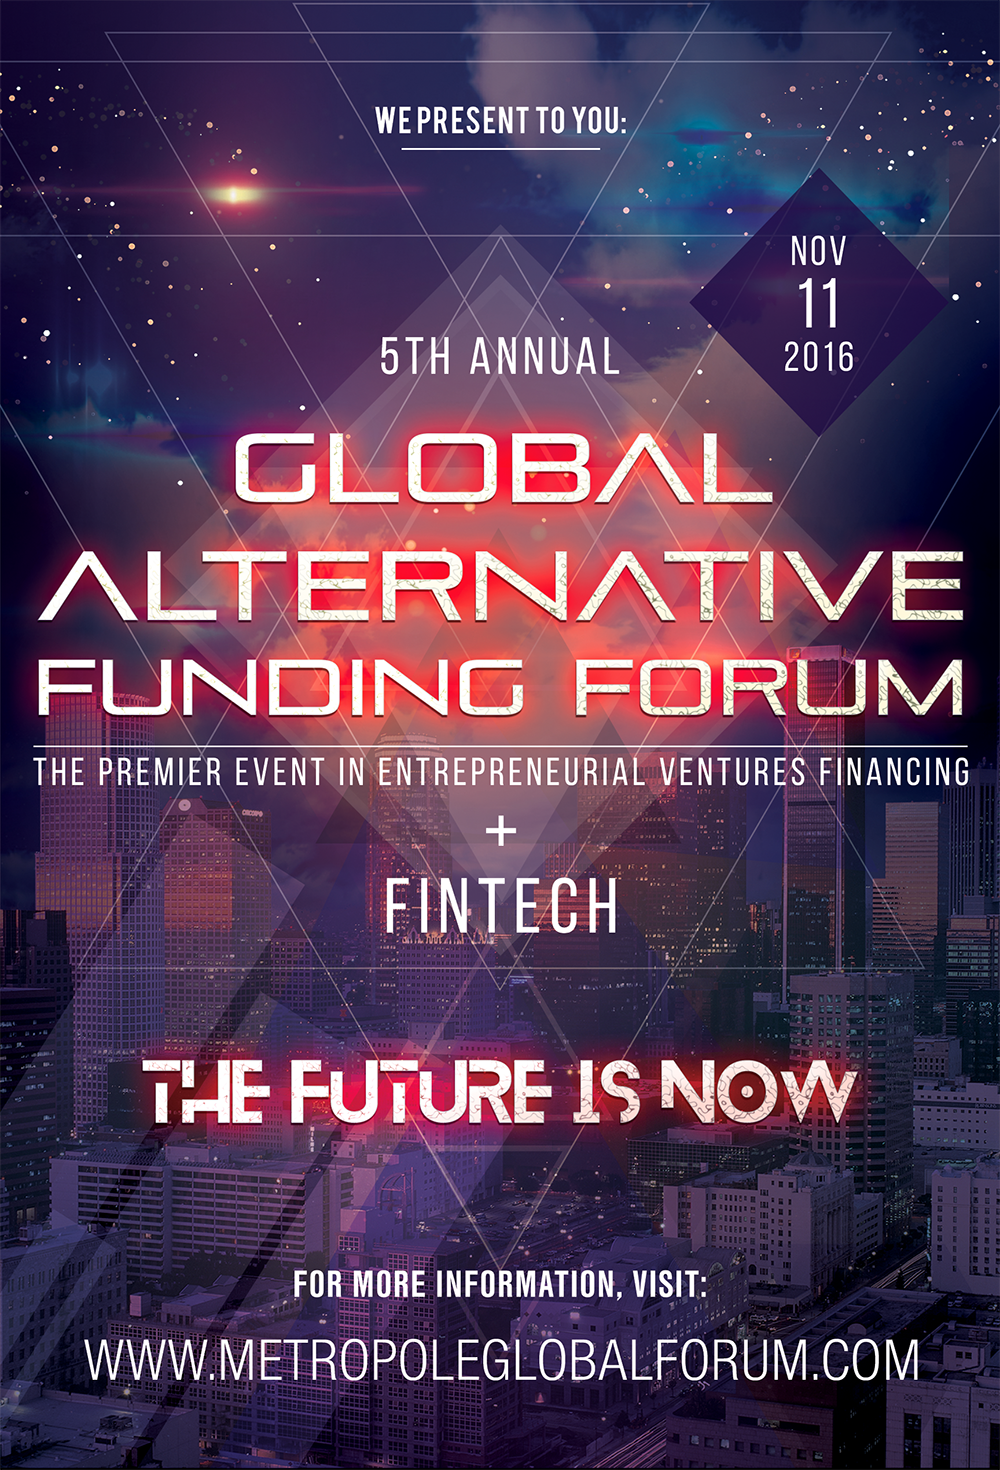 Global Alternative Funding Forum